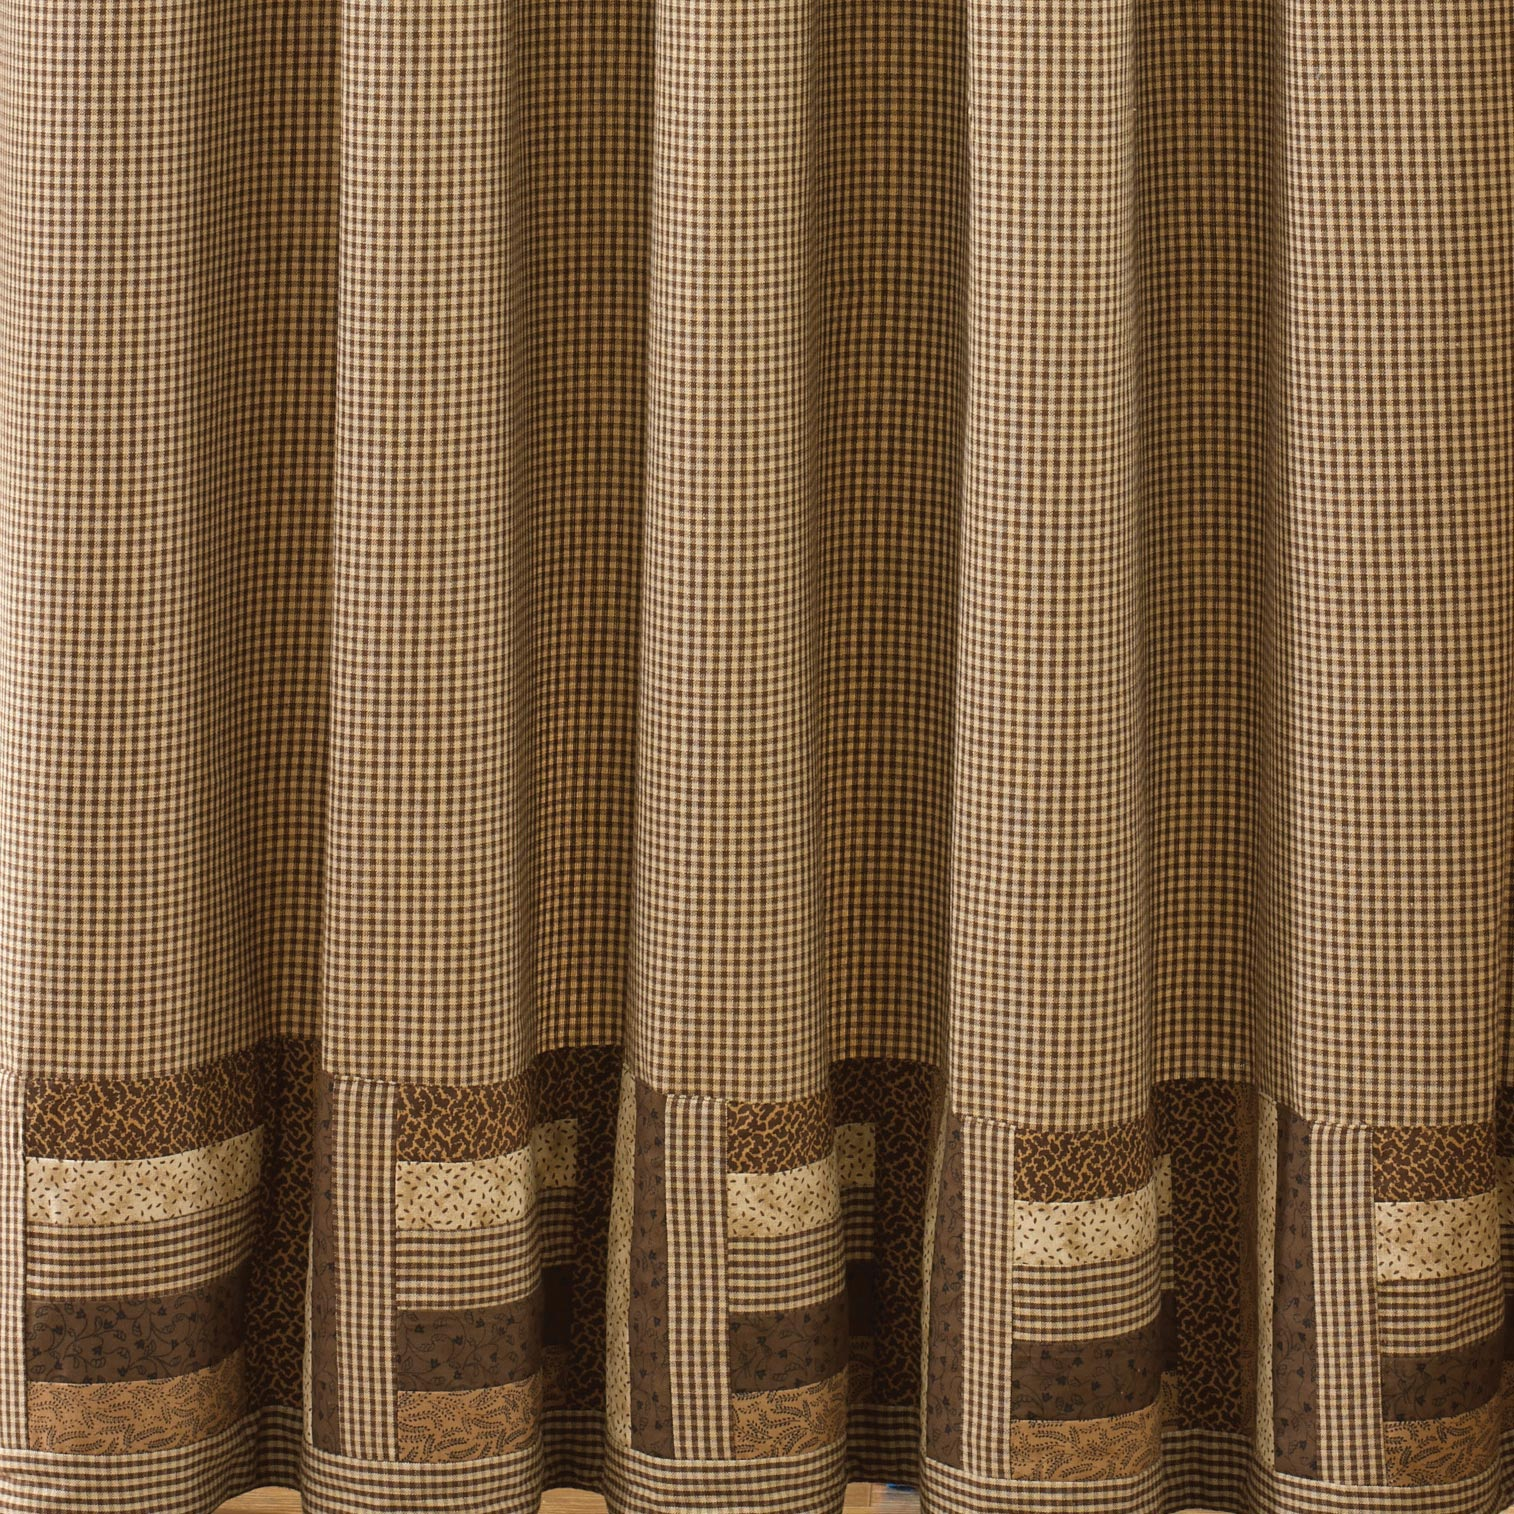 Country Shades Of Brown Shower Curtain Brown Tan 72x72 Cotton eBay